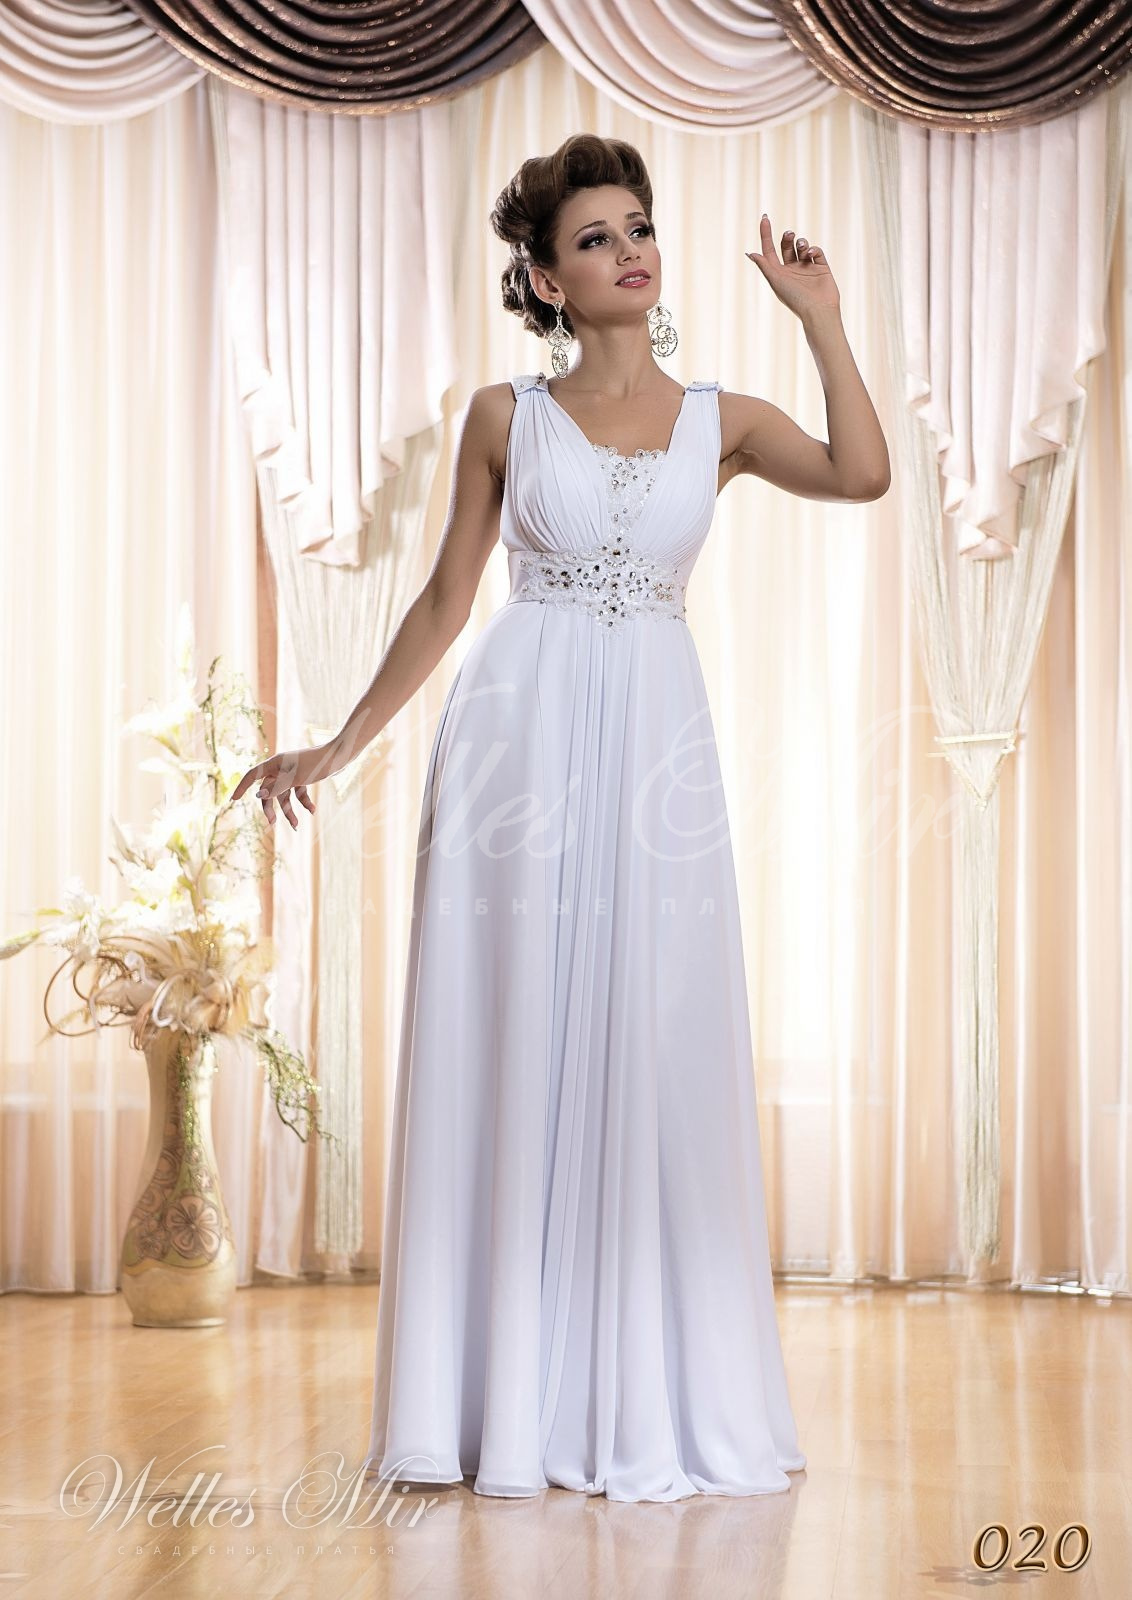 Wedding dresses 020